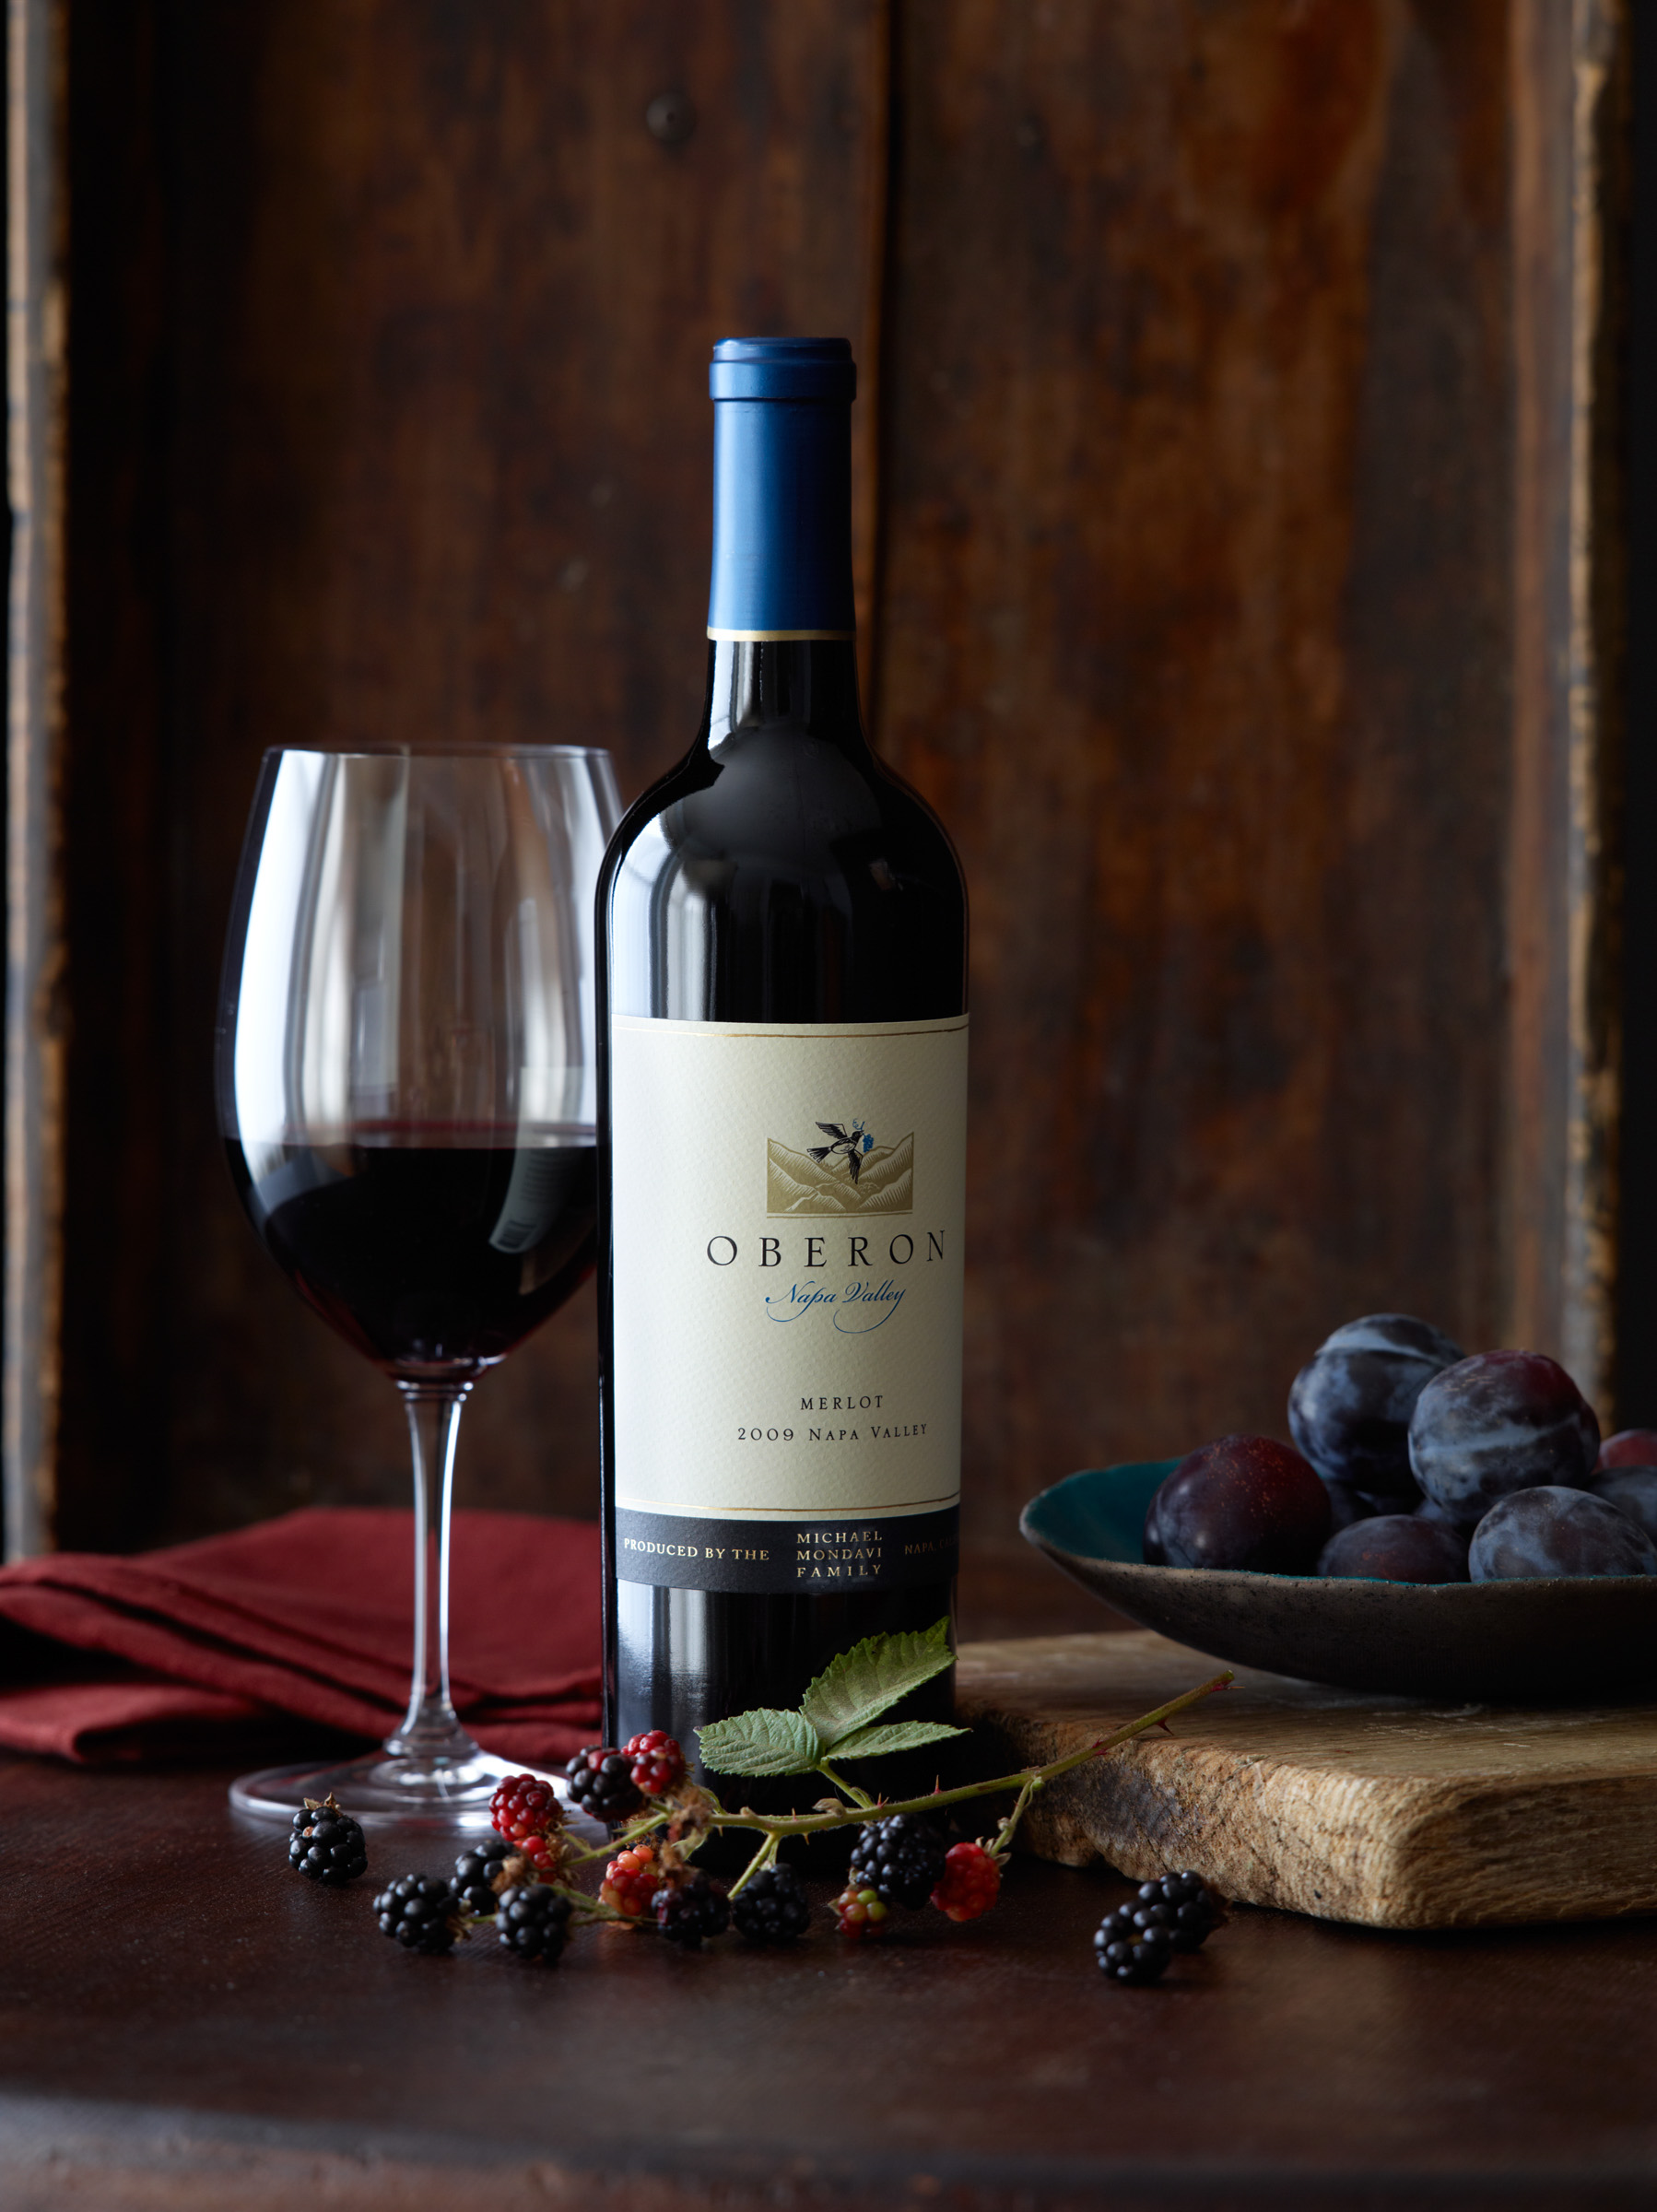 Robyn Valarik San Francisco Based Food & Drink Stylist - Merlot, red, wine, California, grapes, still-life, figs, berries, bottle, terrior, label, food-photography